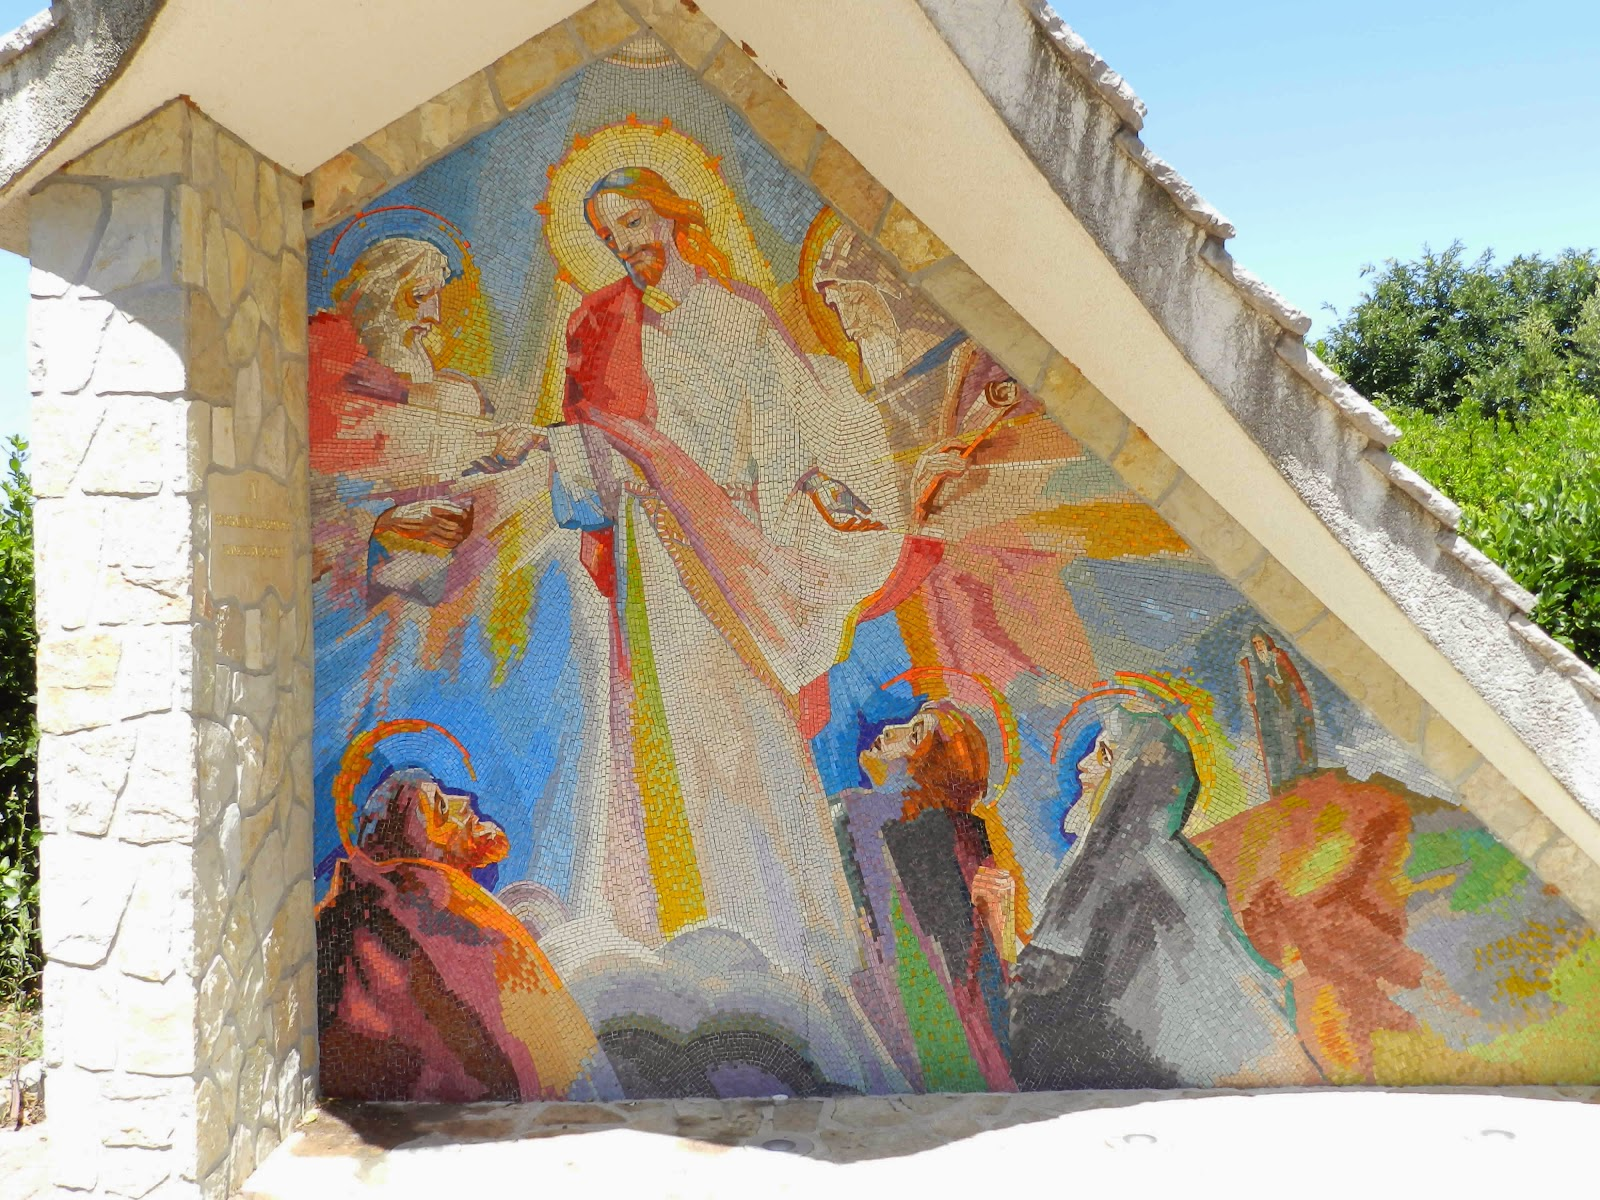 The fourth Luminous Mystery mosaic in Medjugorje, The Transfiguration